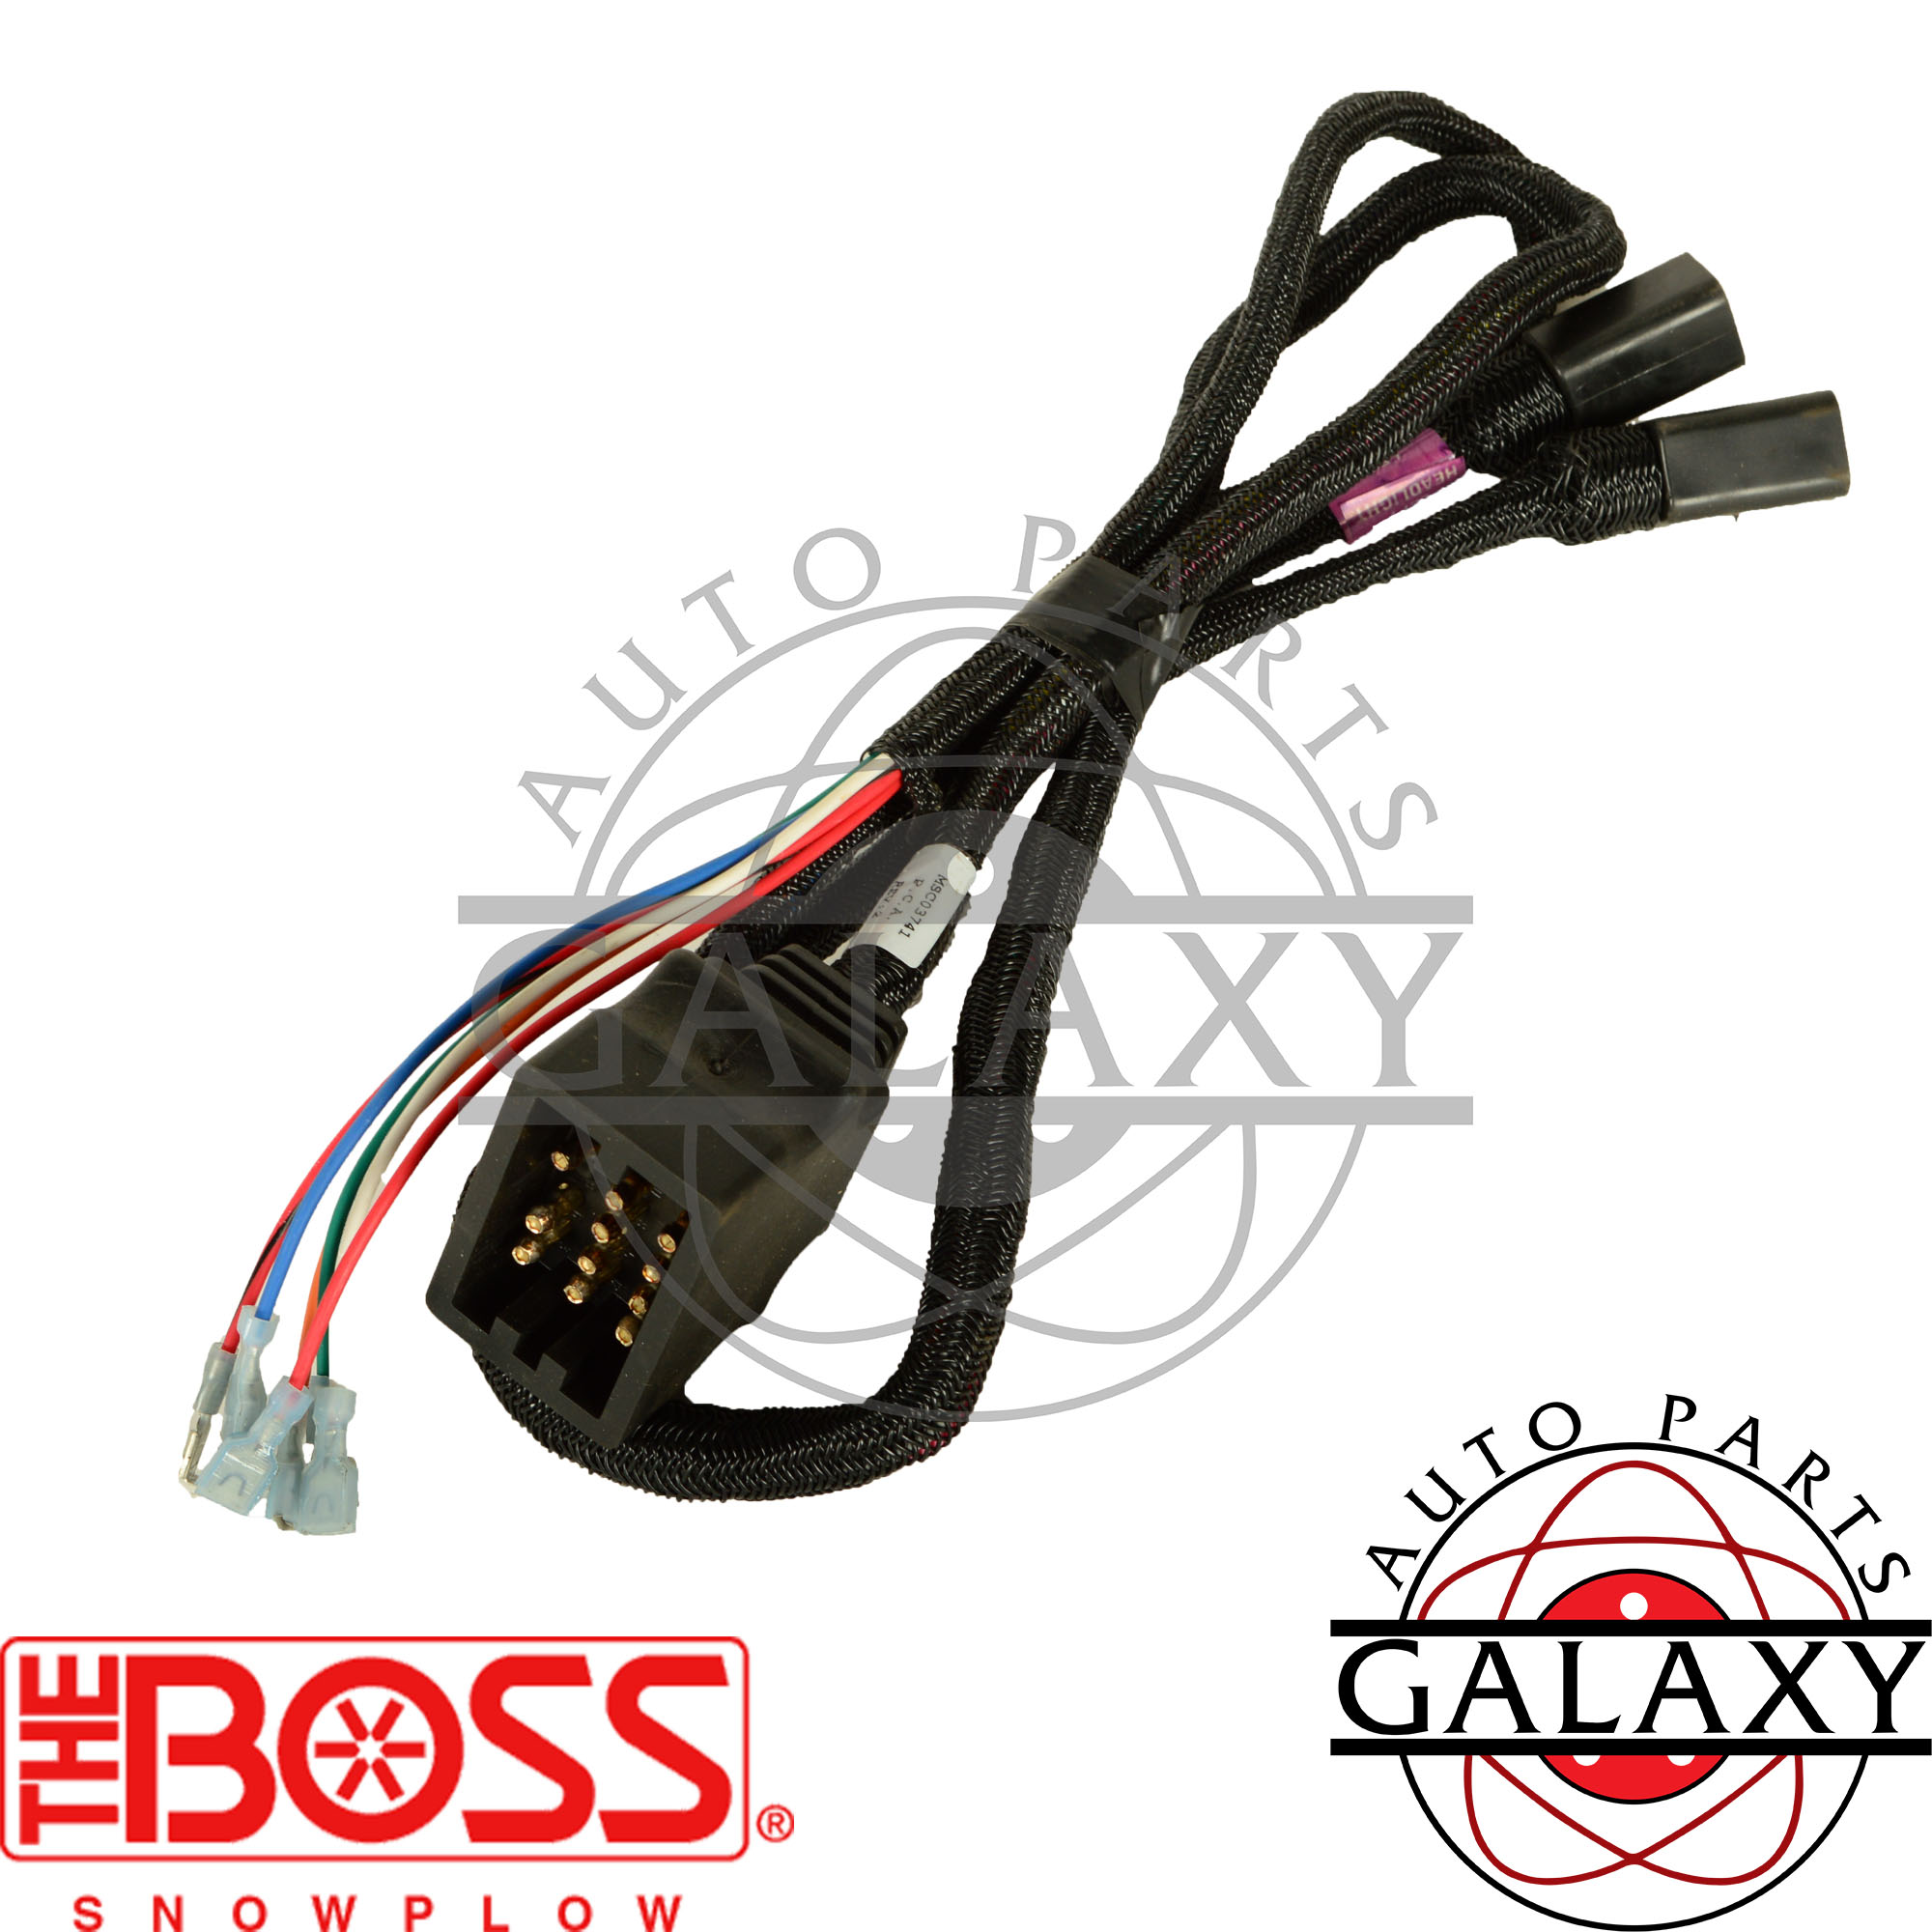 boss msc03741 snow plow wiring harness ebay. Black Bedroom Furniture Sets. Home Design Ideas